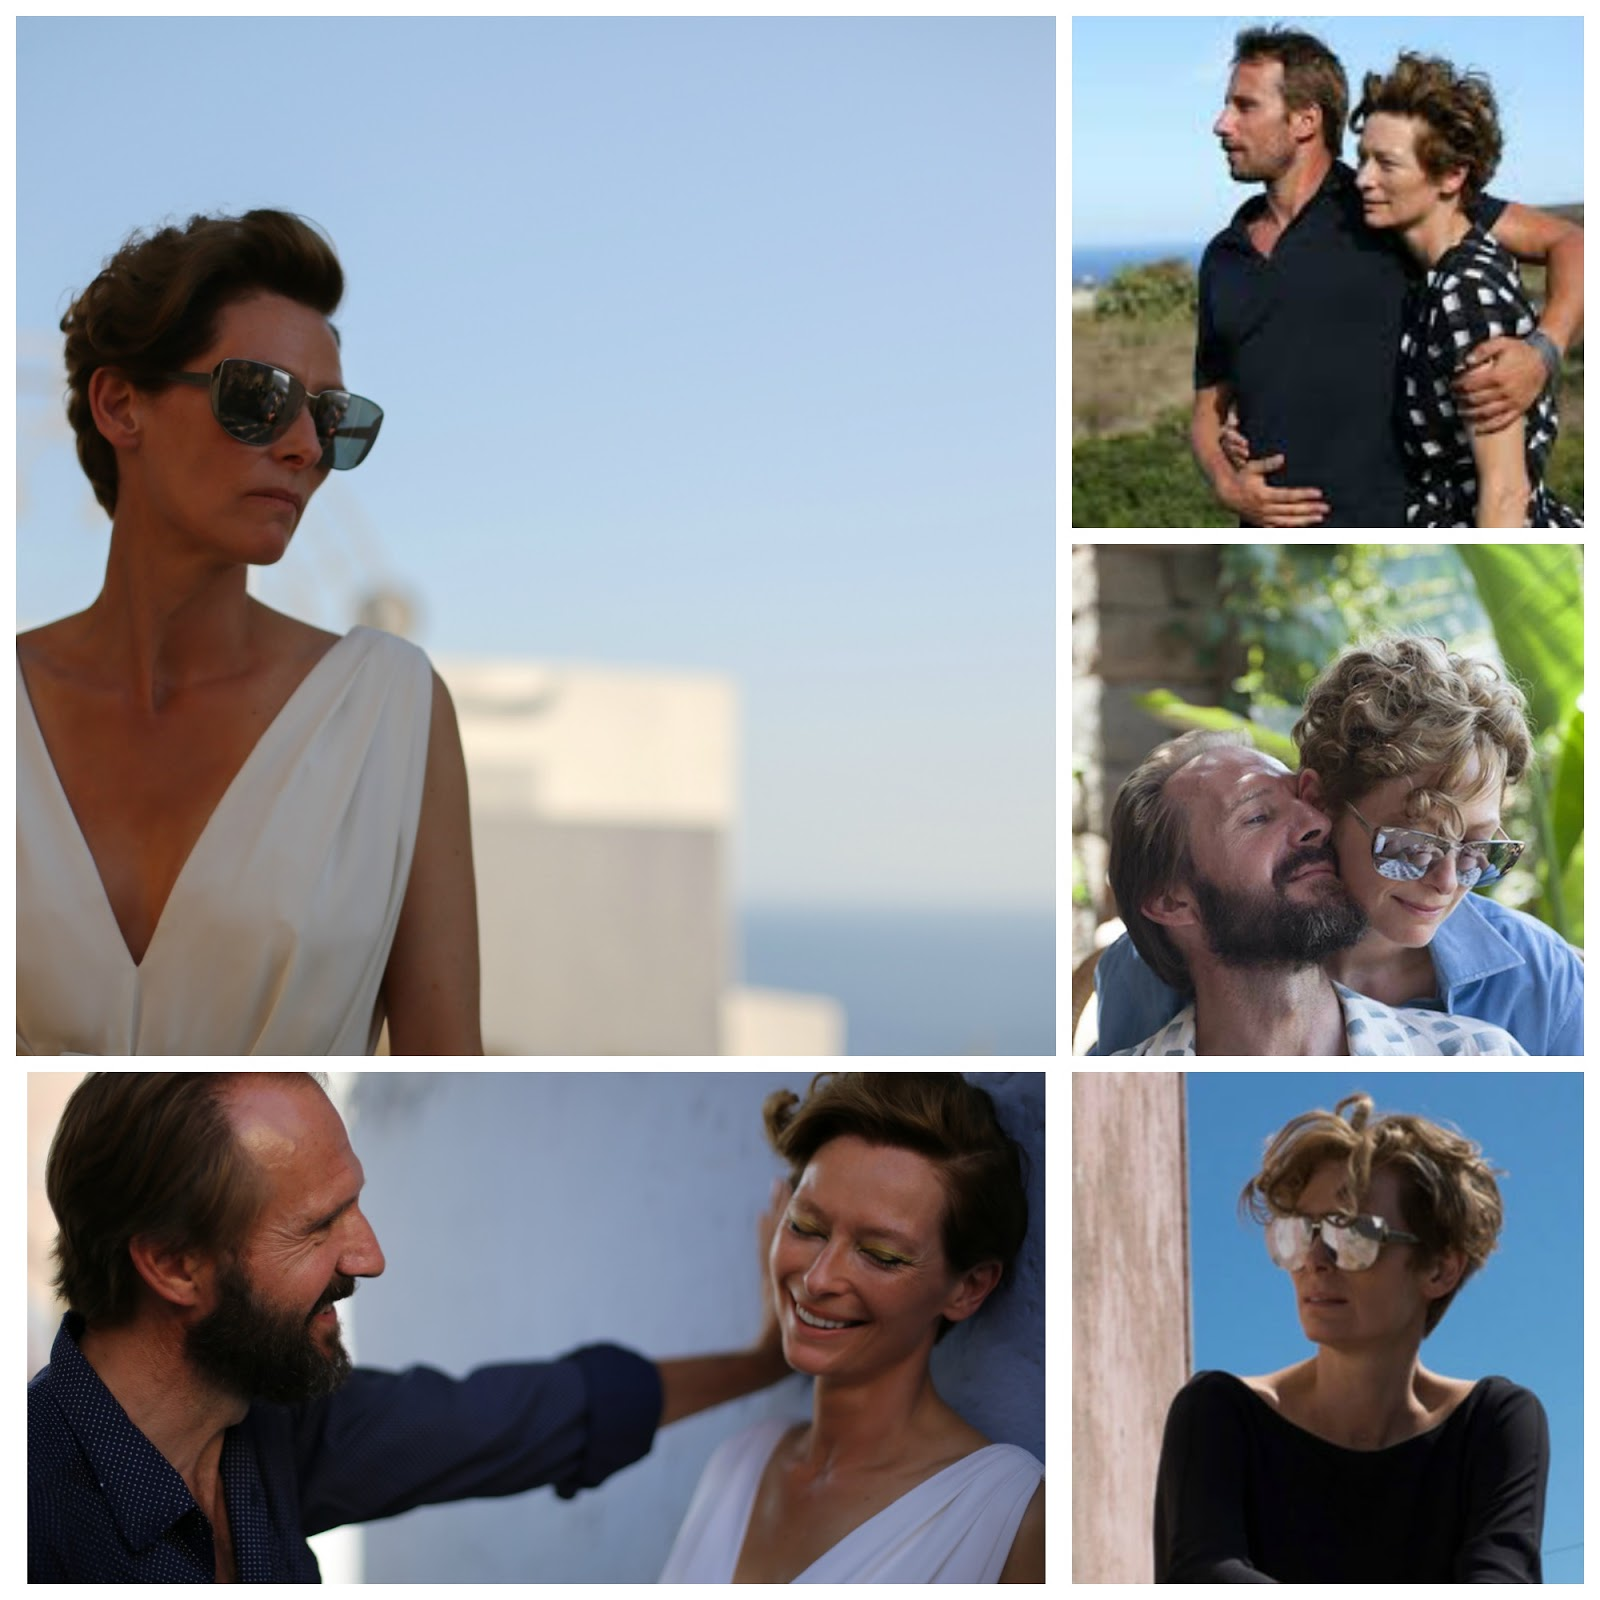 Weekend at the movies a bigger splash style charmer for A bigger splash movie